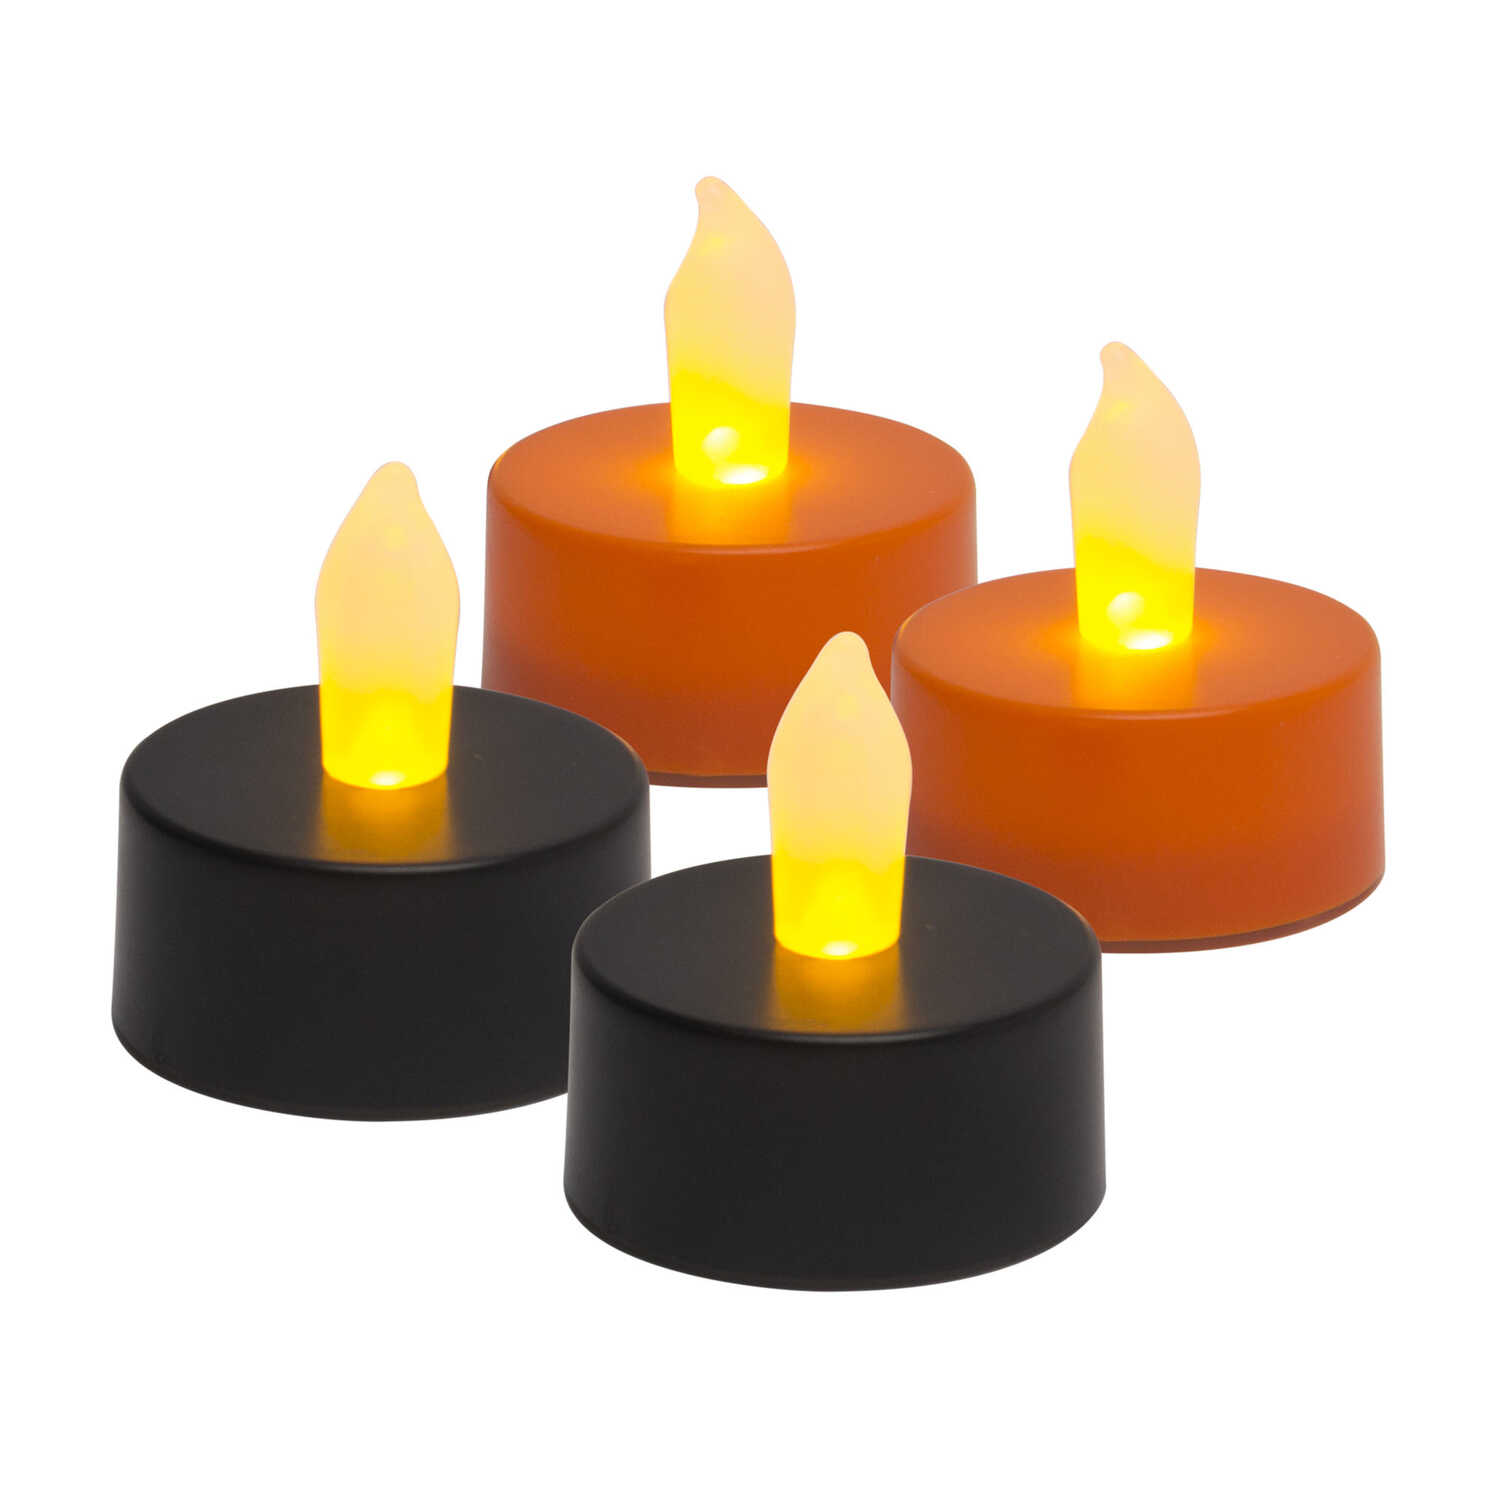 Inglow  Flameless Tea light Candle  Lighted 1 in. H x 1 in. W x 1 in. L Halloween Decoration  4 pk